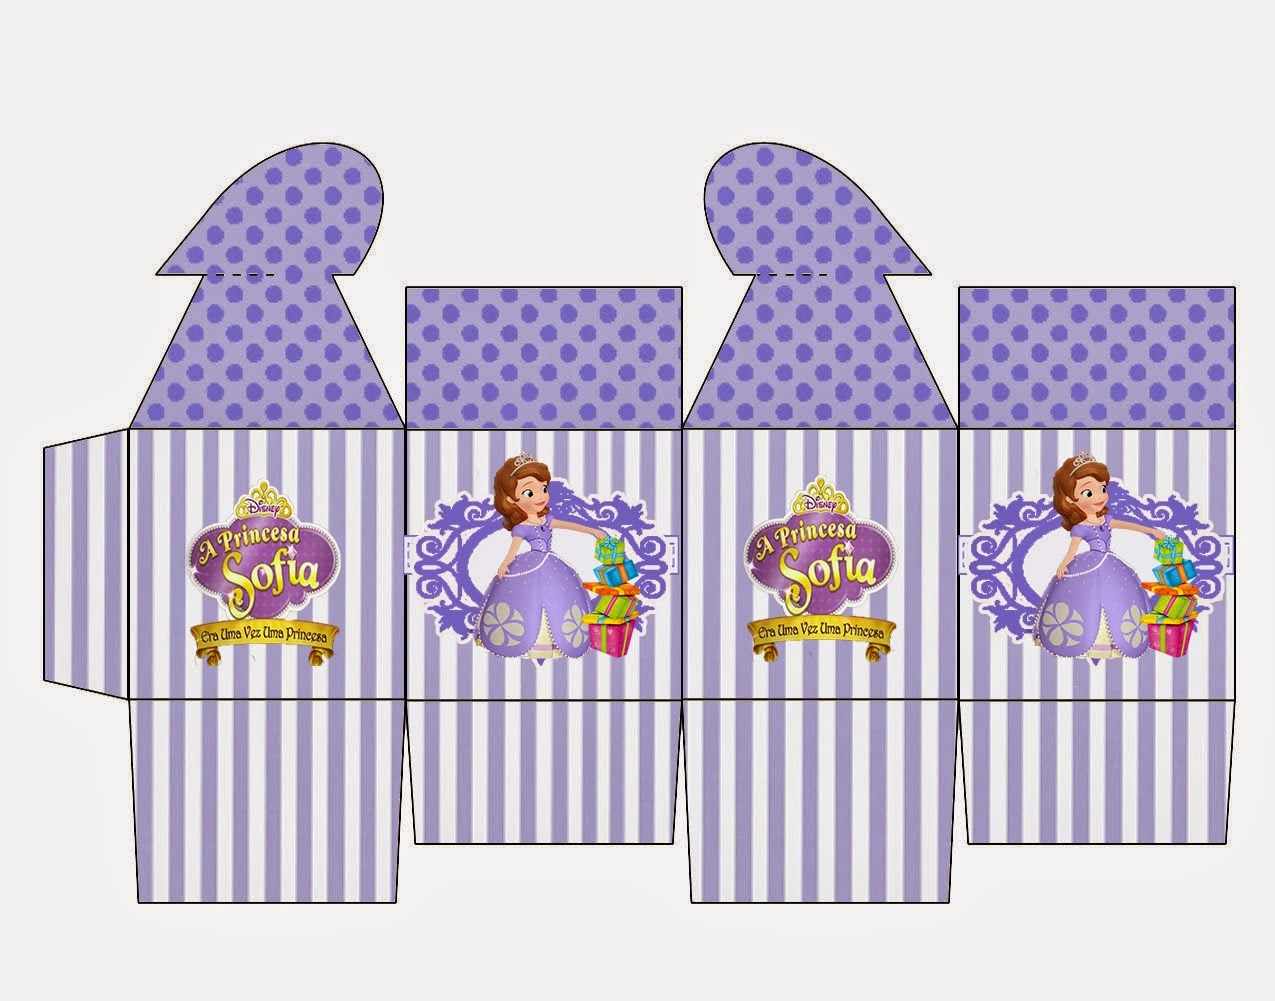 Sofia the First Free Printable Box with Heart Closure.